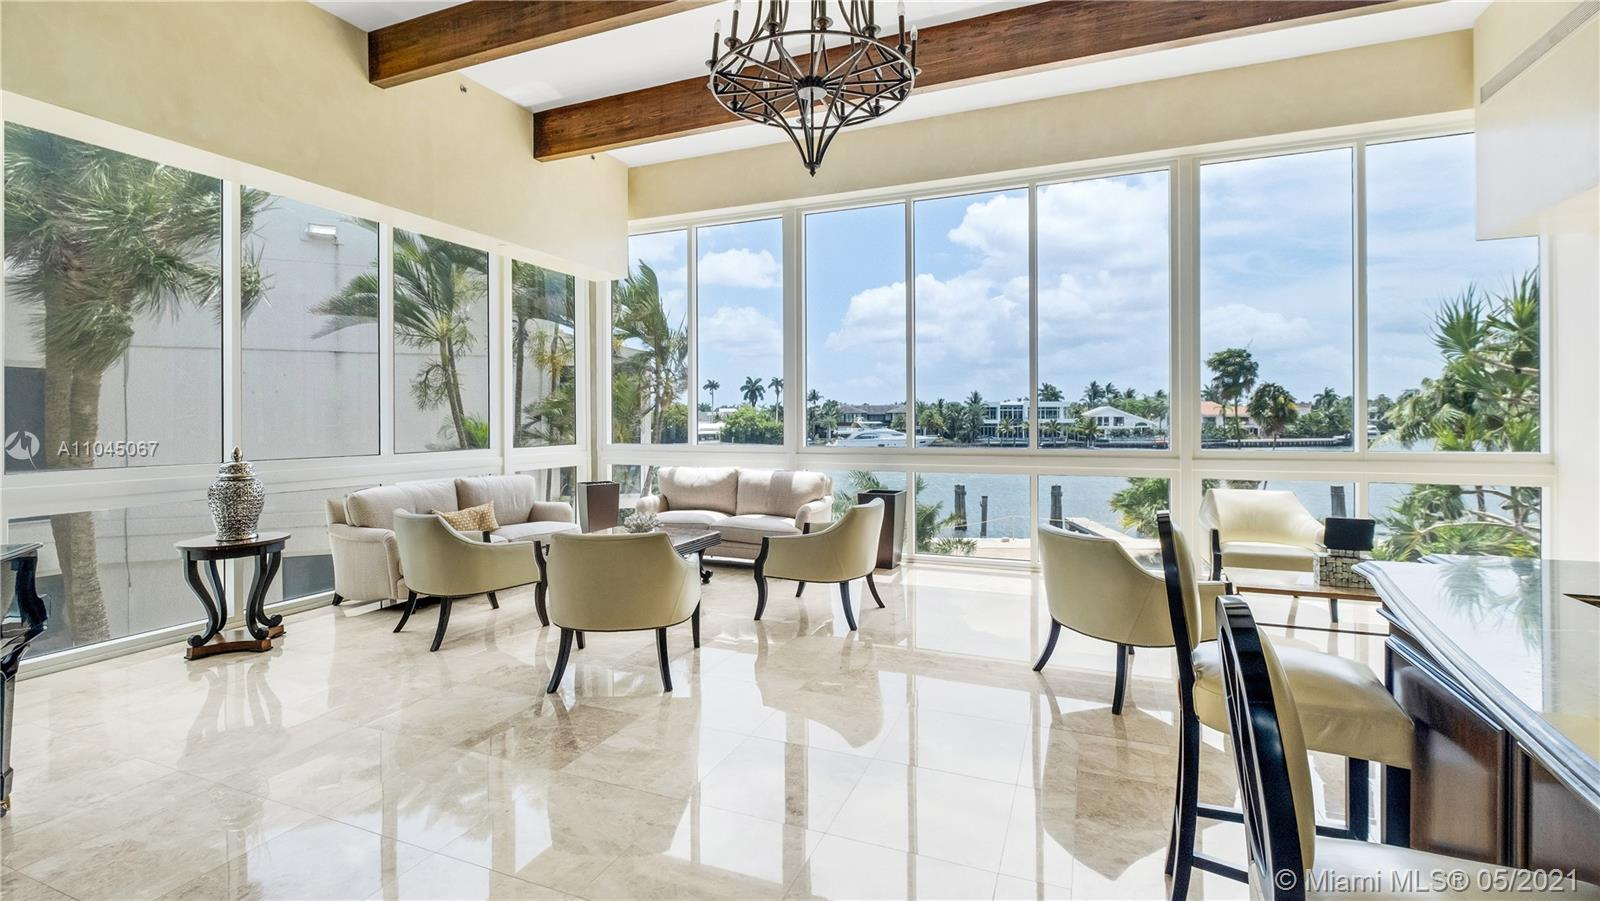 Photo of 20281 Country Club Dr #314, Aventura, Florida, 33180 - Main entry off Country Club Dr into the Hamptons (West and South) community.